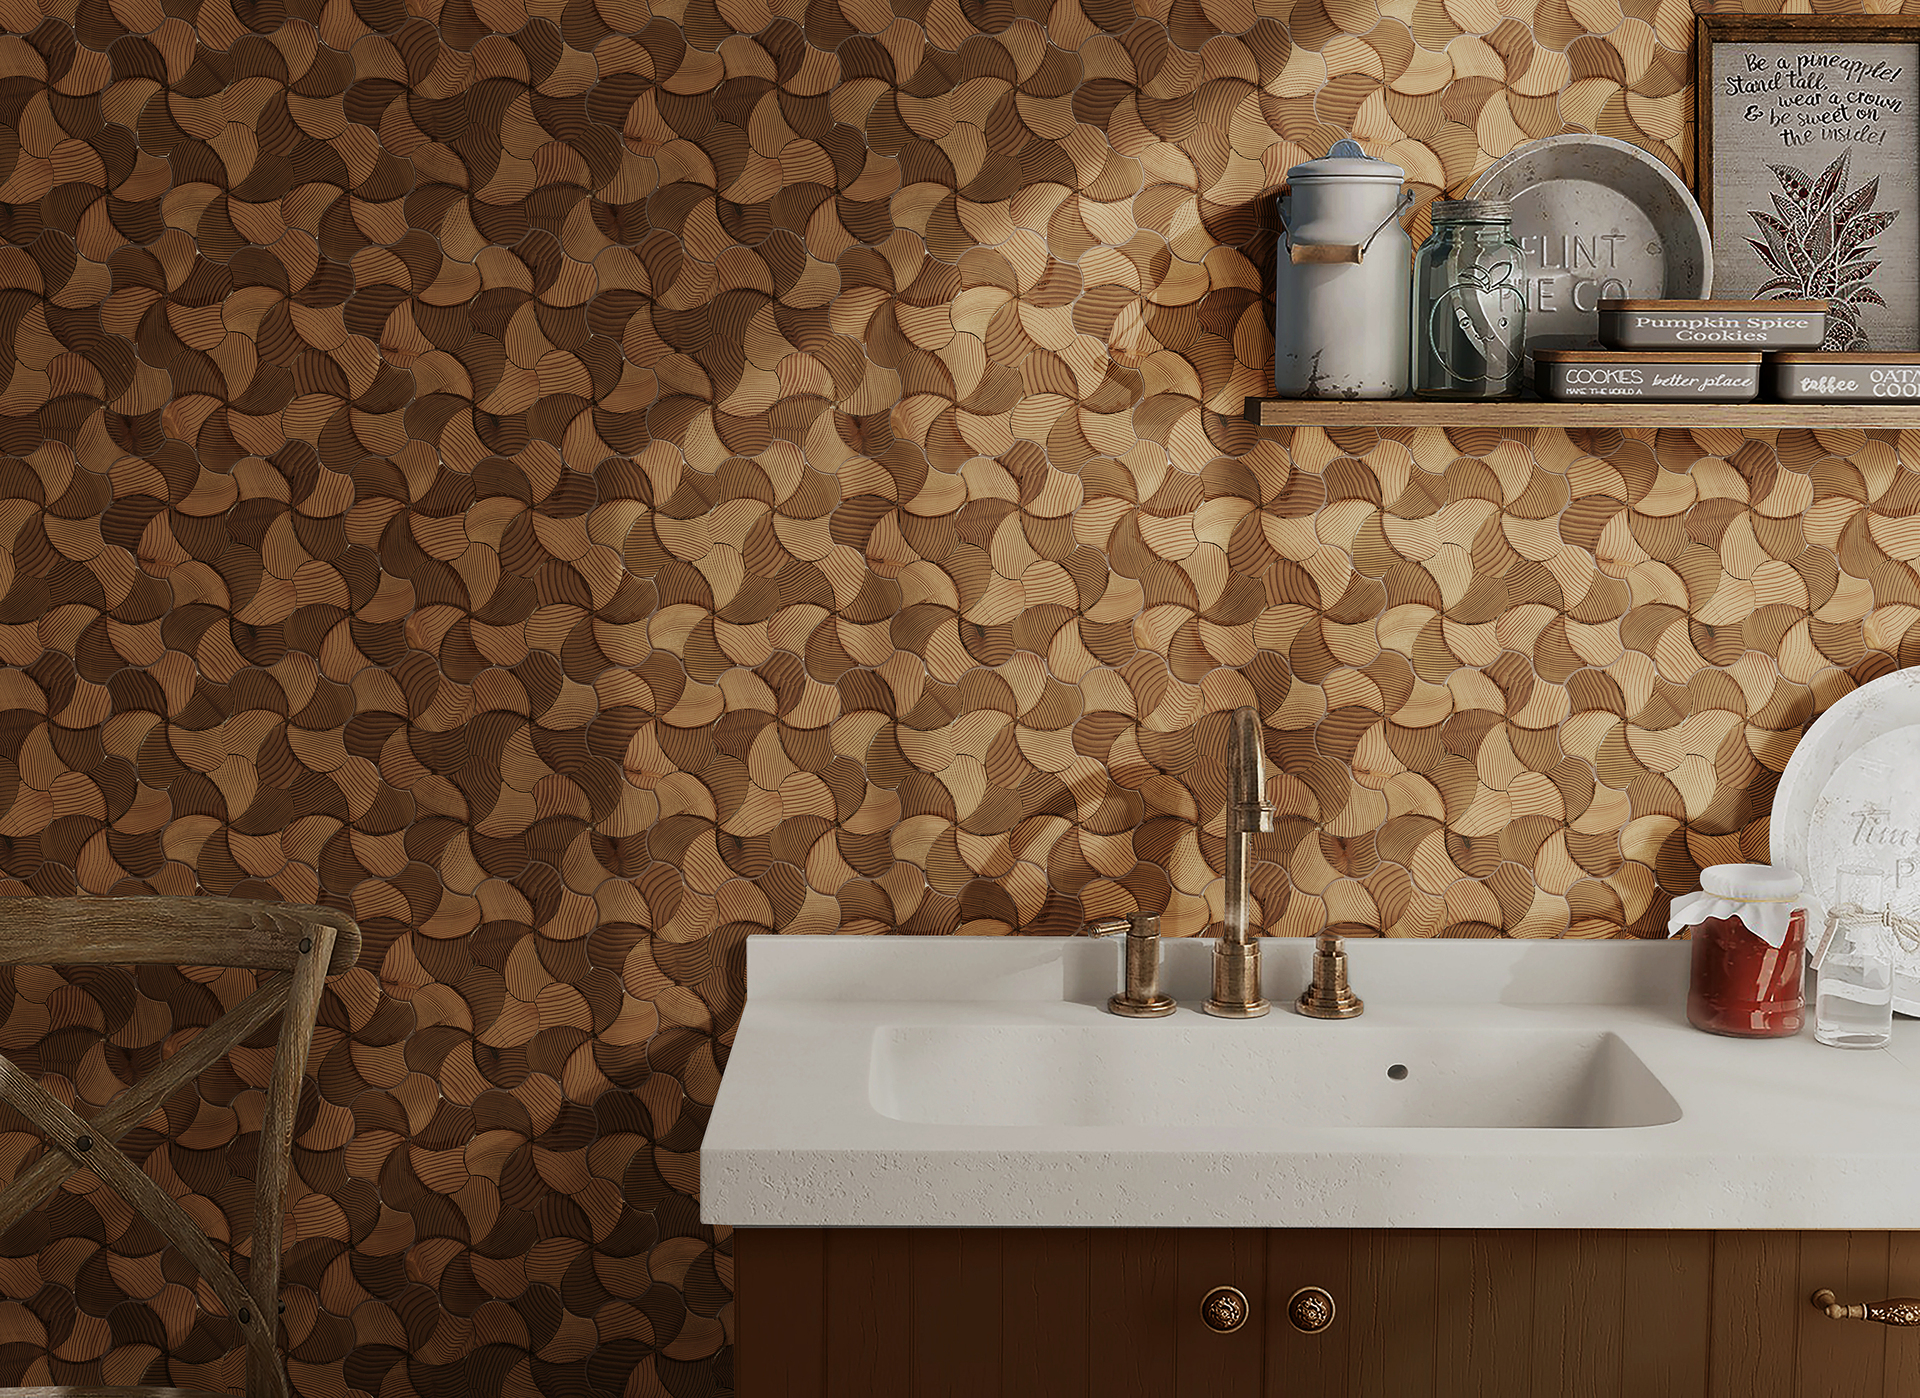 Create an attractive focal point with decorative wood mosaic tiles. These mosaic style tiles offer rustic wood detail that brings sophistication to your setting.